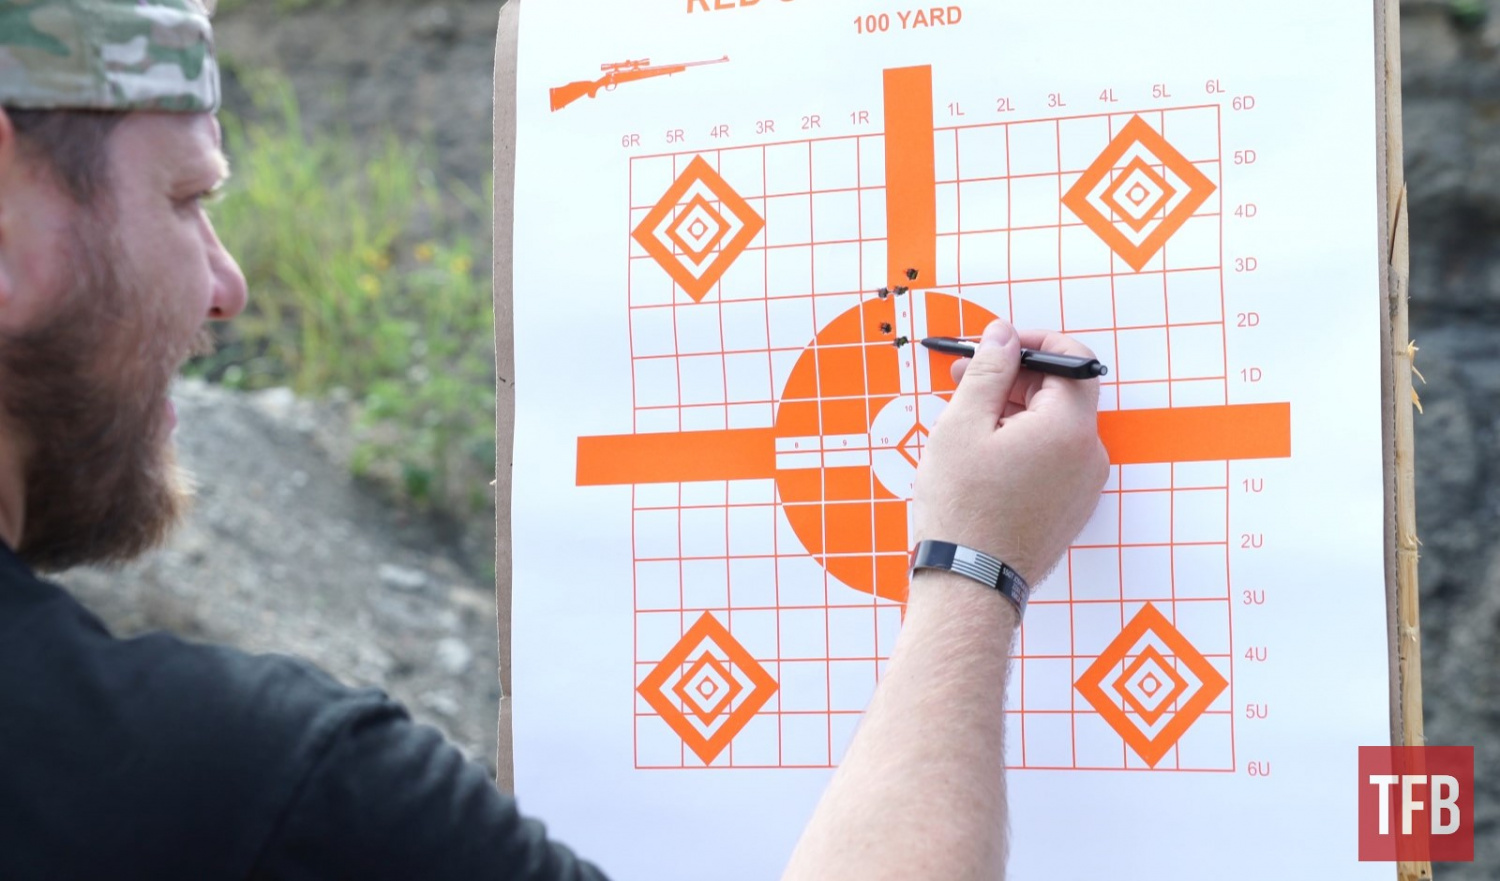 Examining and marking the first group I shot out of the Predator. After a few more rounds, we were able to get the gun's groups tightened down a bit and nicely on target.